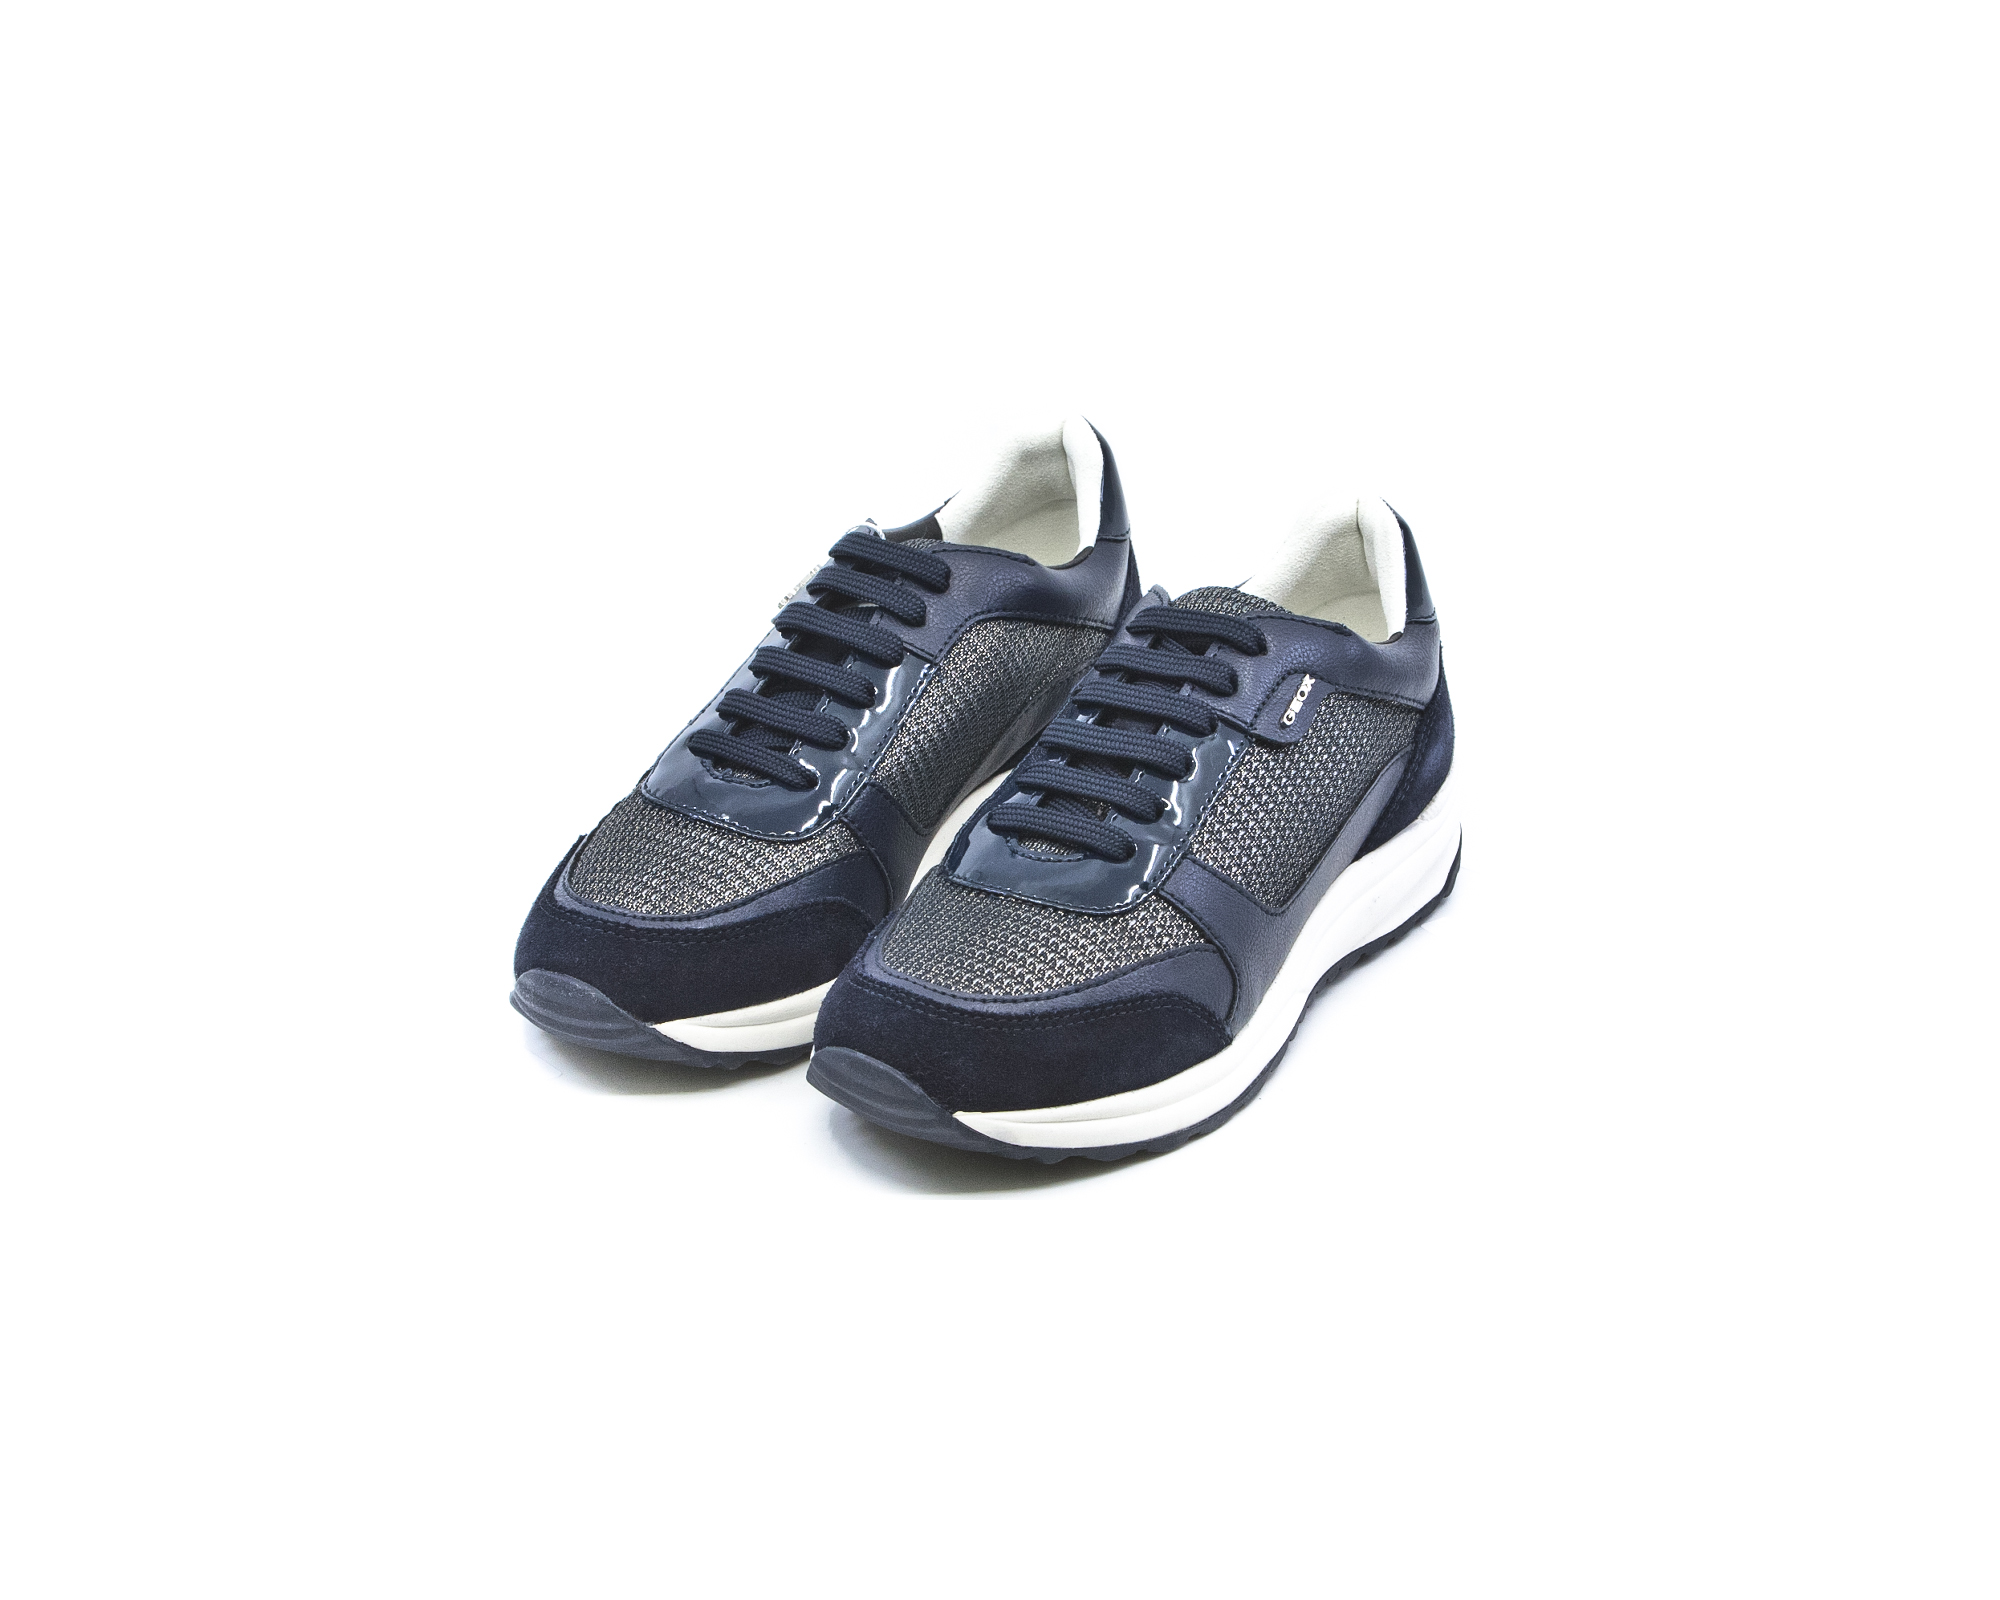 0d08e495d2e Geox Airell Γυναικεία Ανατομικά Sneakers Navy (D642SC 0LY22 C4002) -  LifeShoes.gr